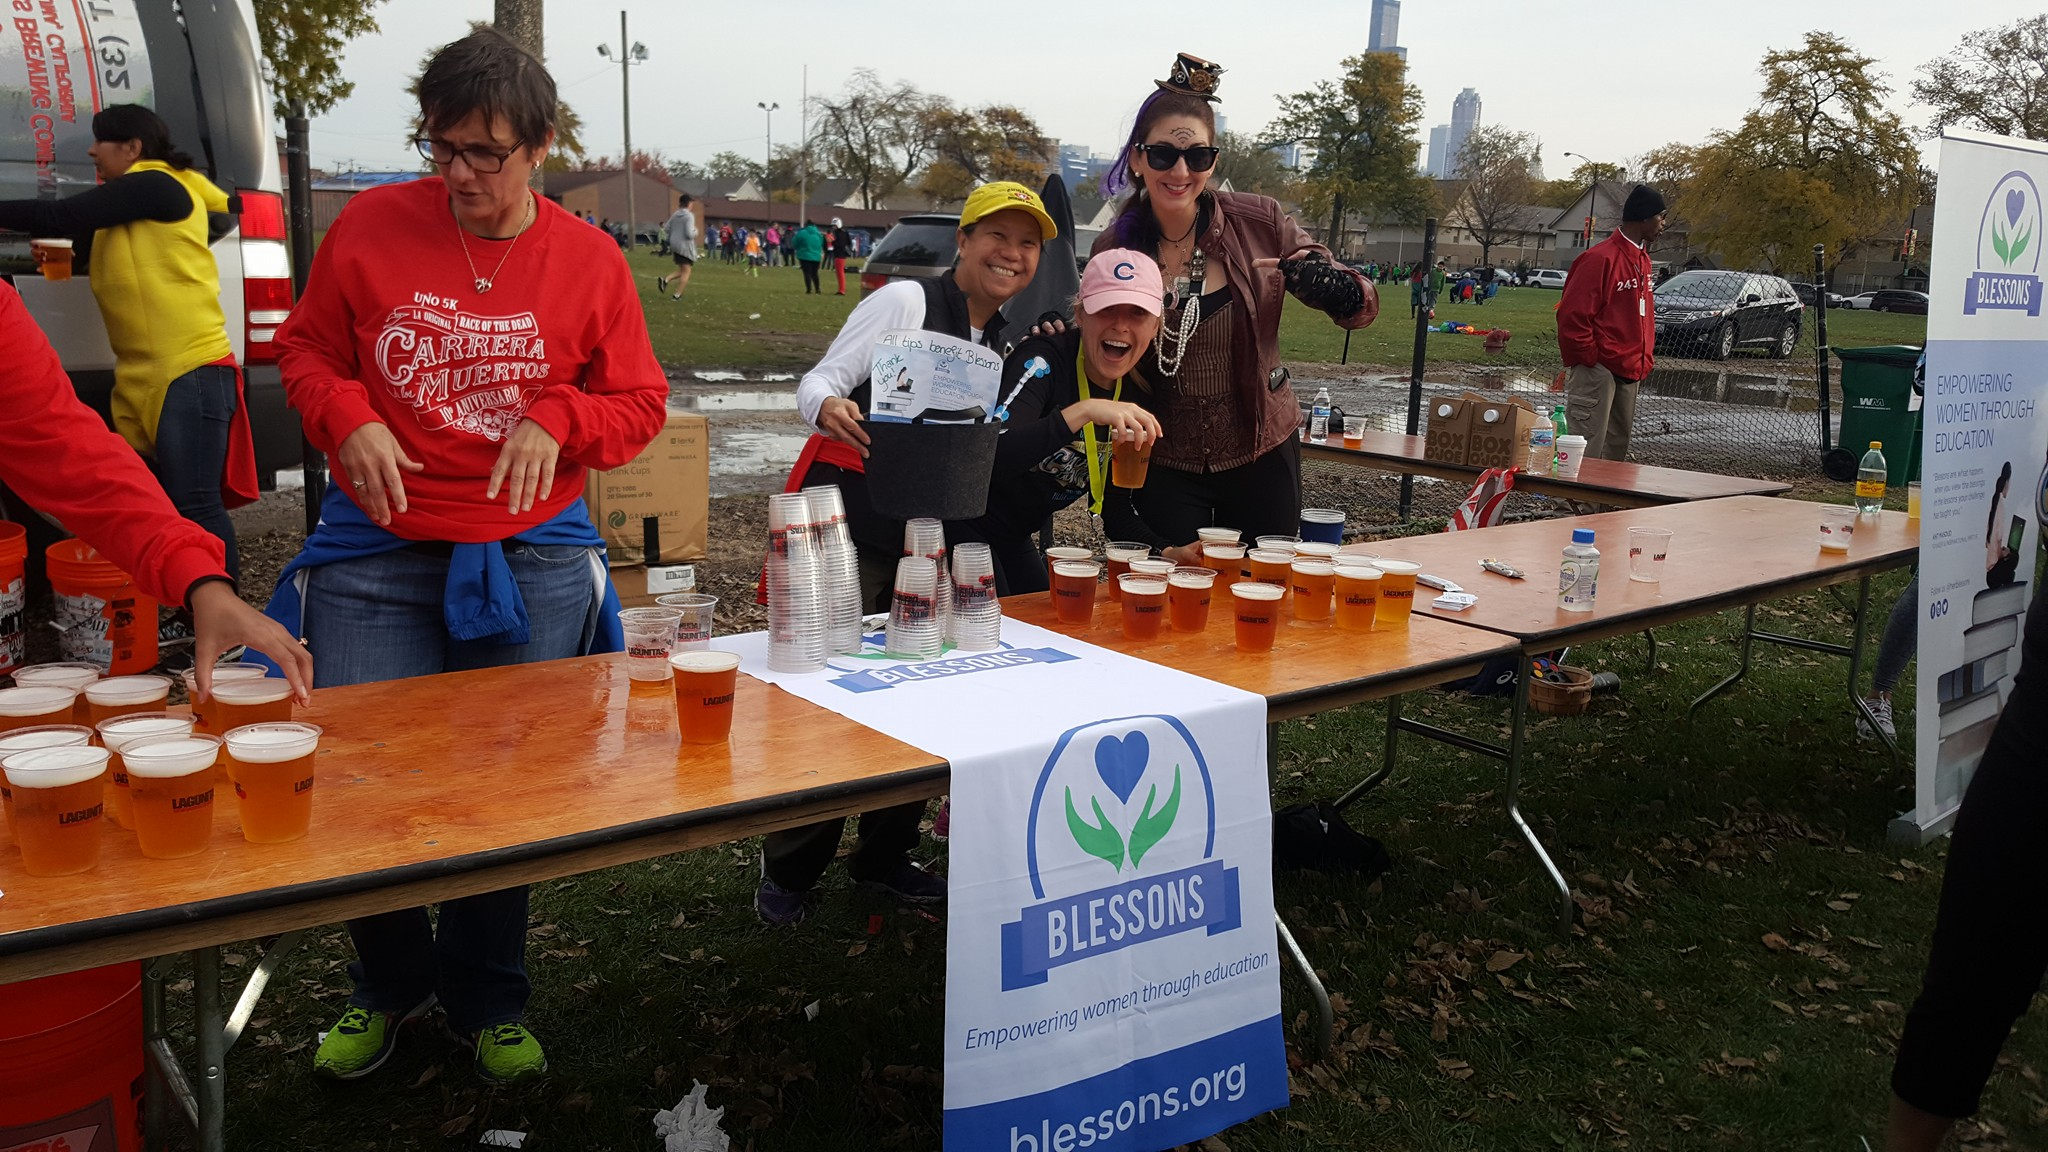 2019 Uno 5k - la carrera de los muertos Beer tent - Celebrate the Day of the Dead by volunteering with Blessons at the beer tent! We welcome all genders and volunteers 21 years and older to volunteer!